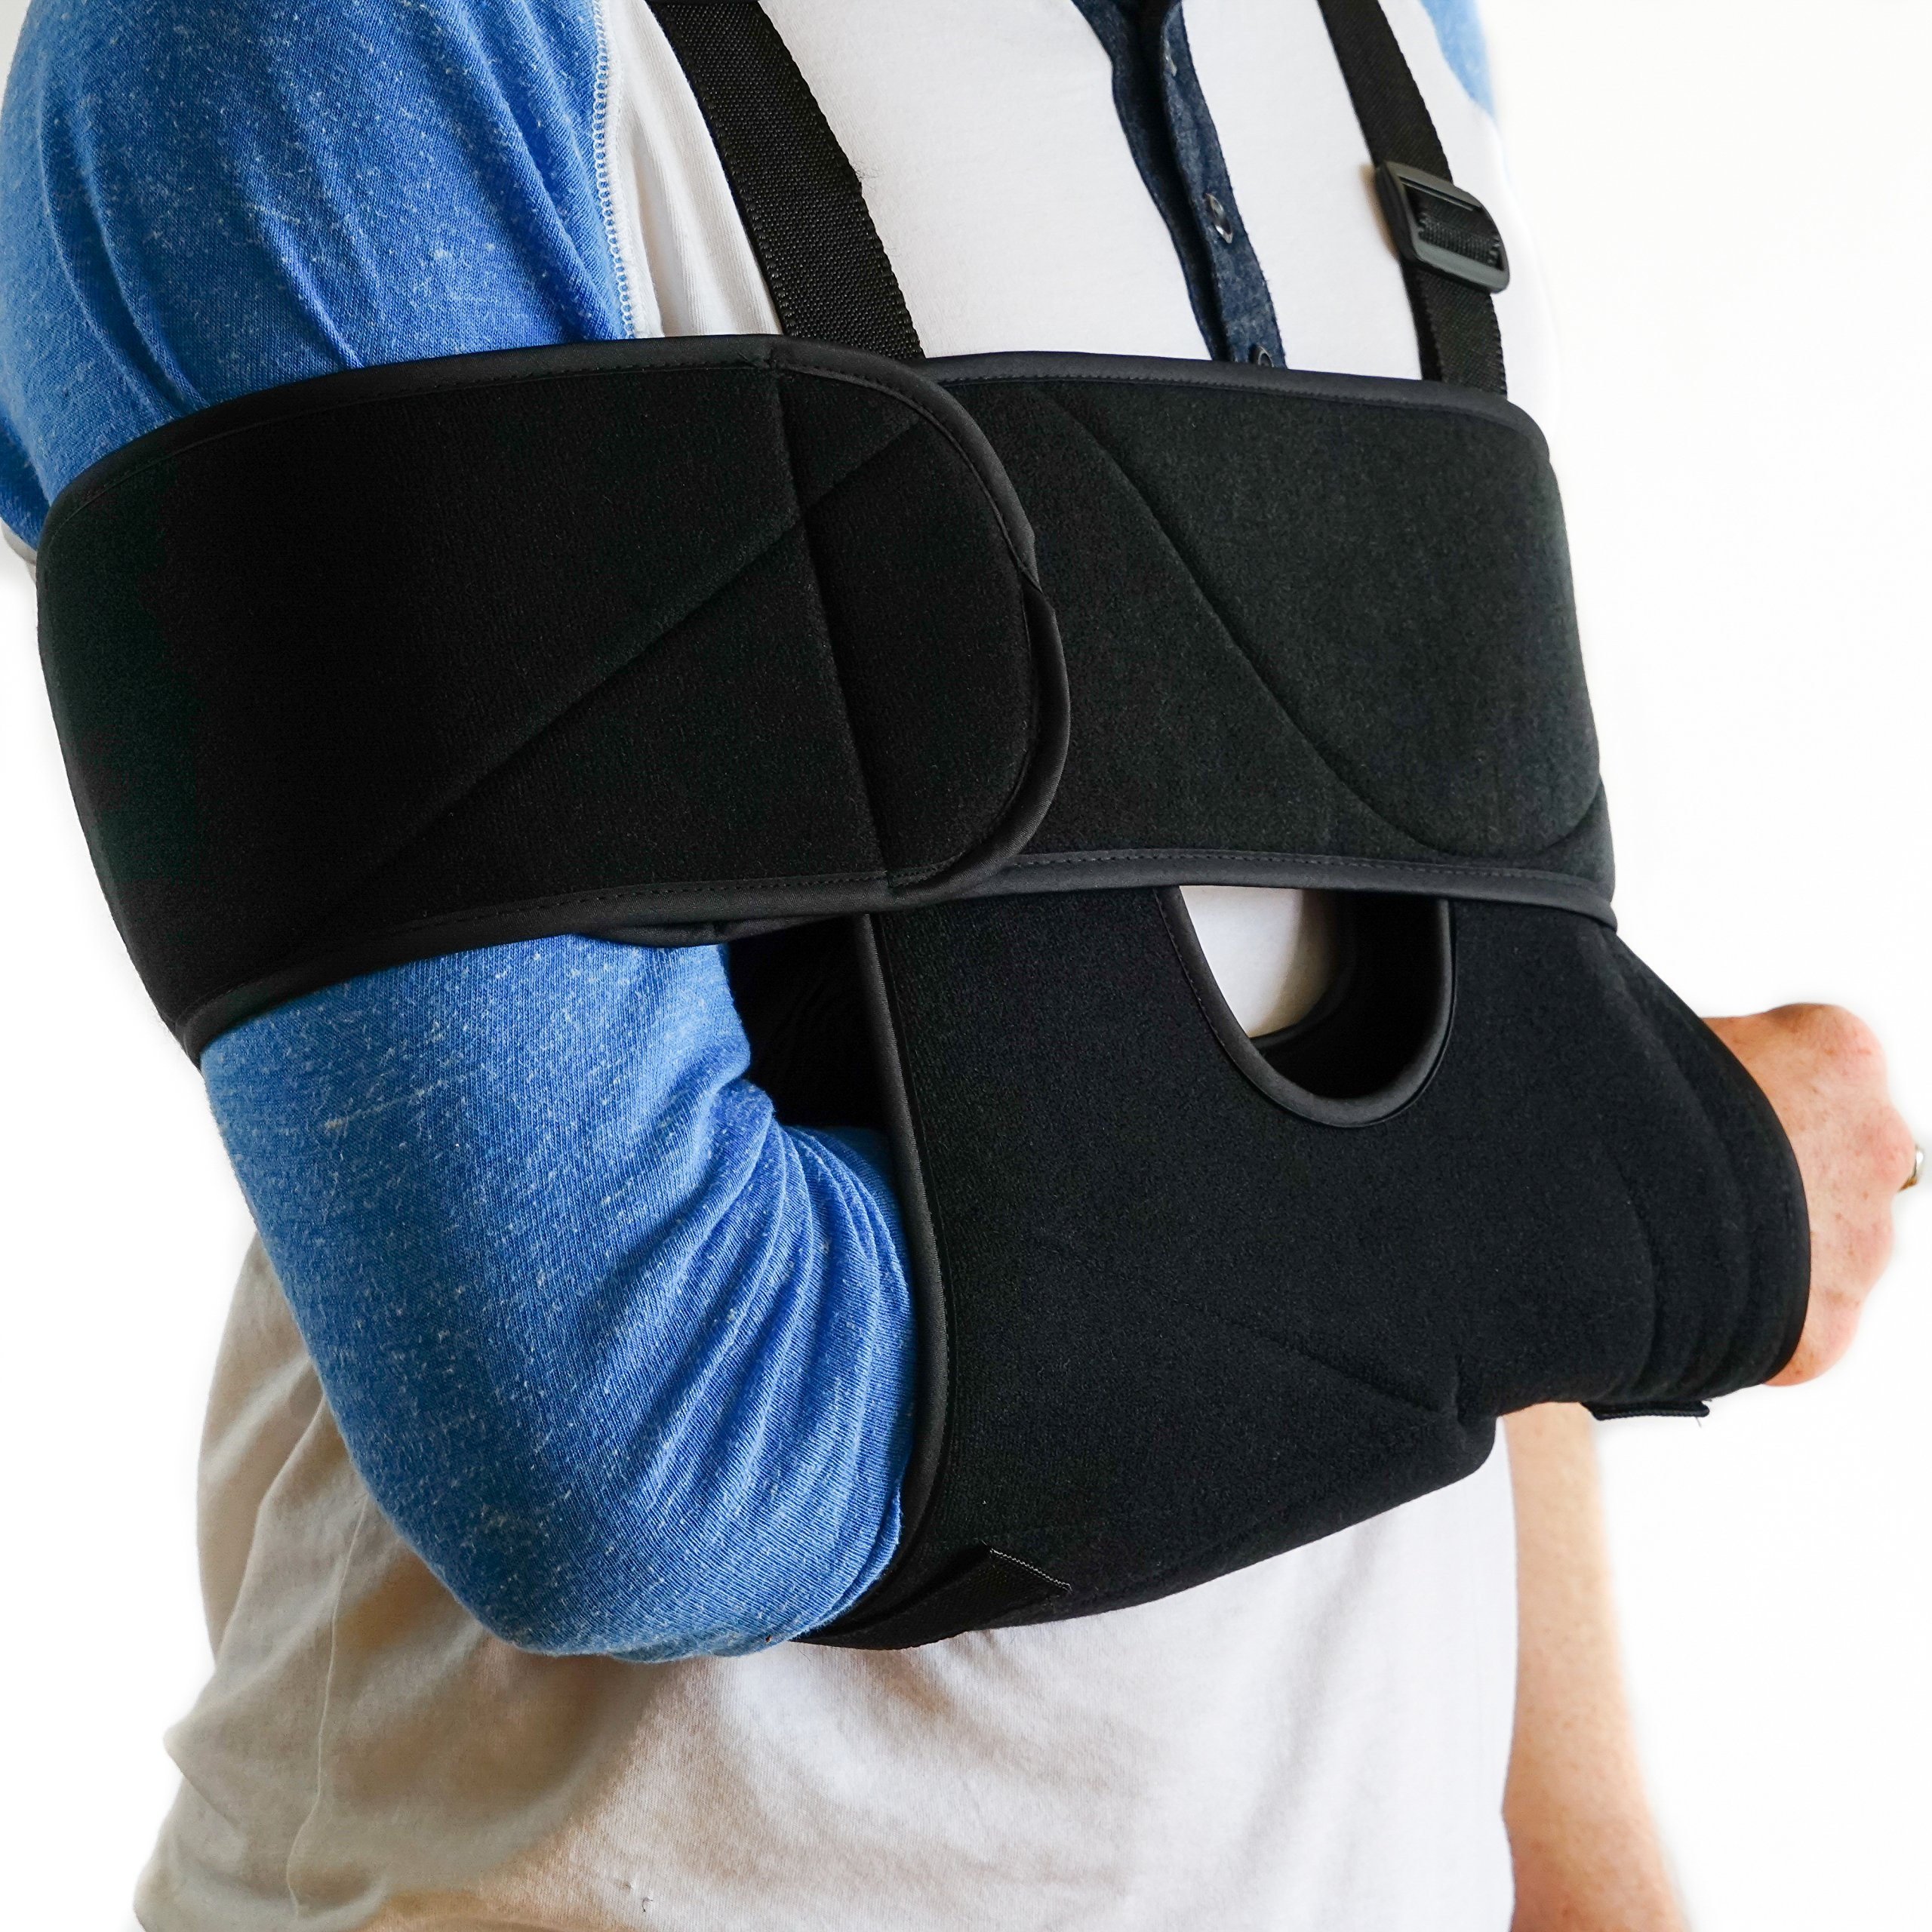 Medical Arm Sling Shoulder Brace | Best Fully Adjustable Rotator Cuff and Elbow Support | Includes Immobilizer Band for Quick Recovery | For Men and Women (Large)